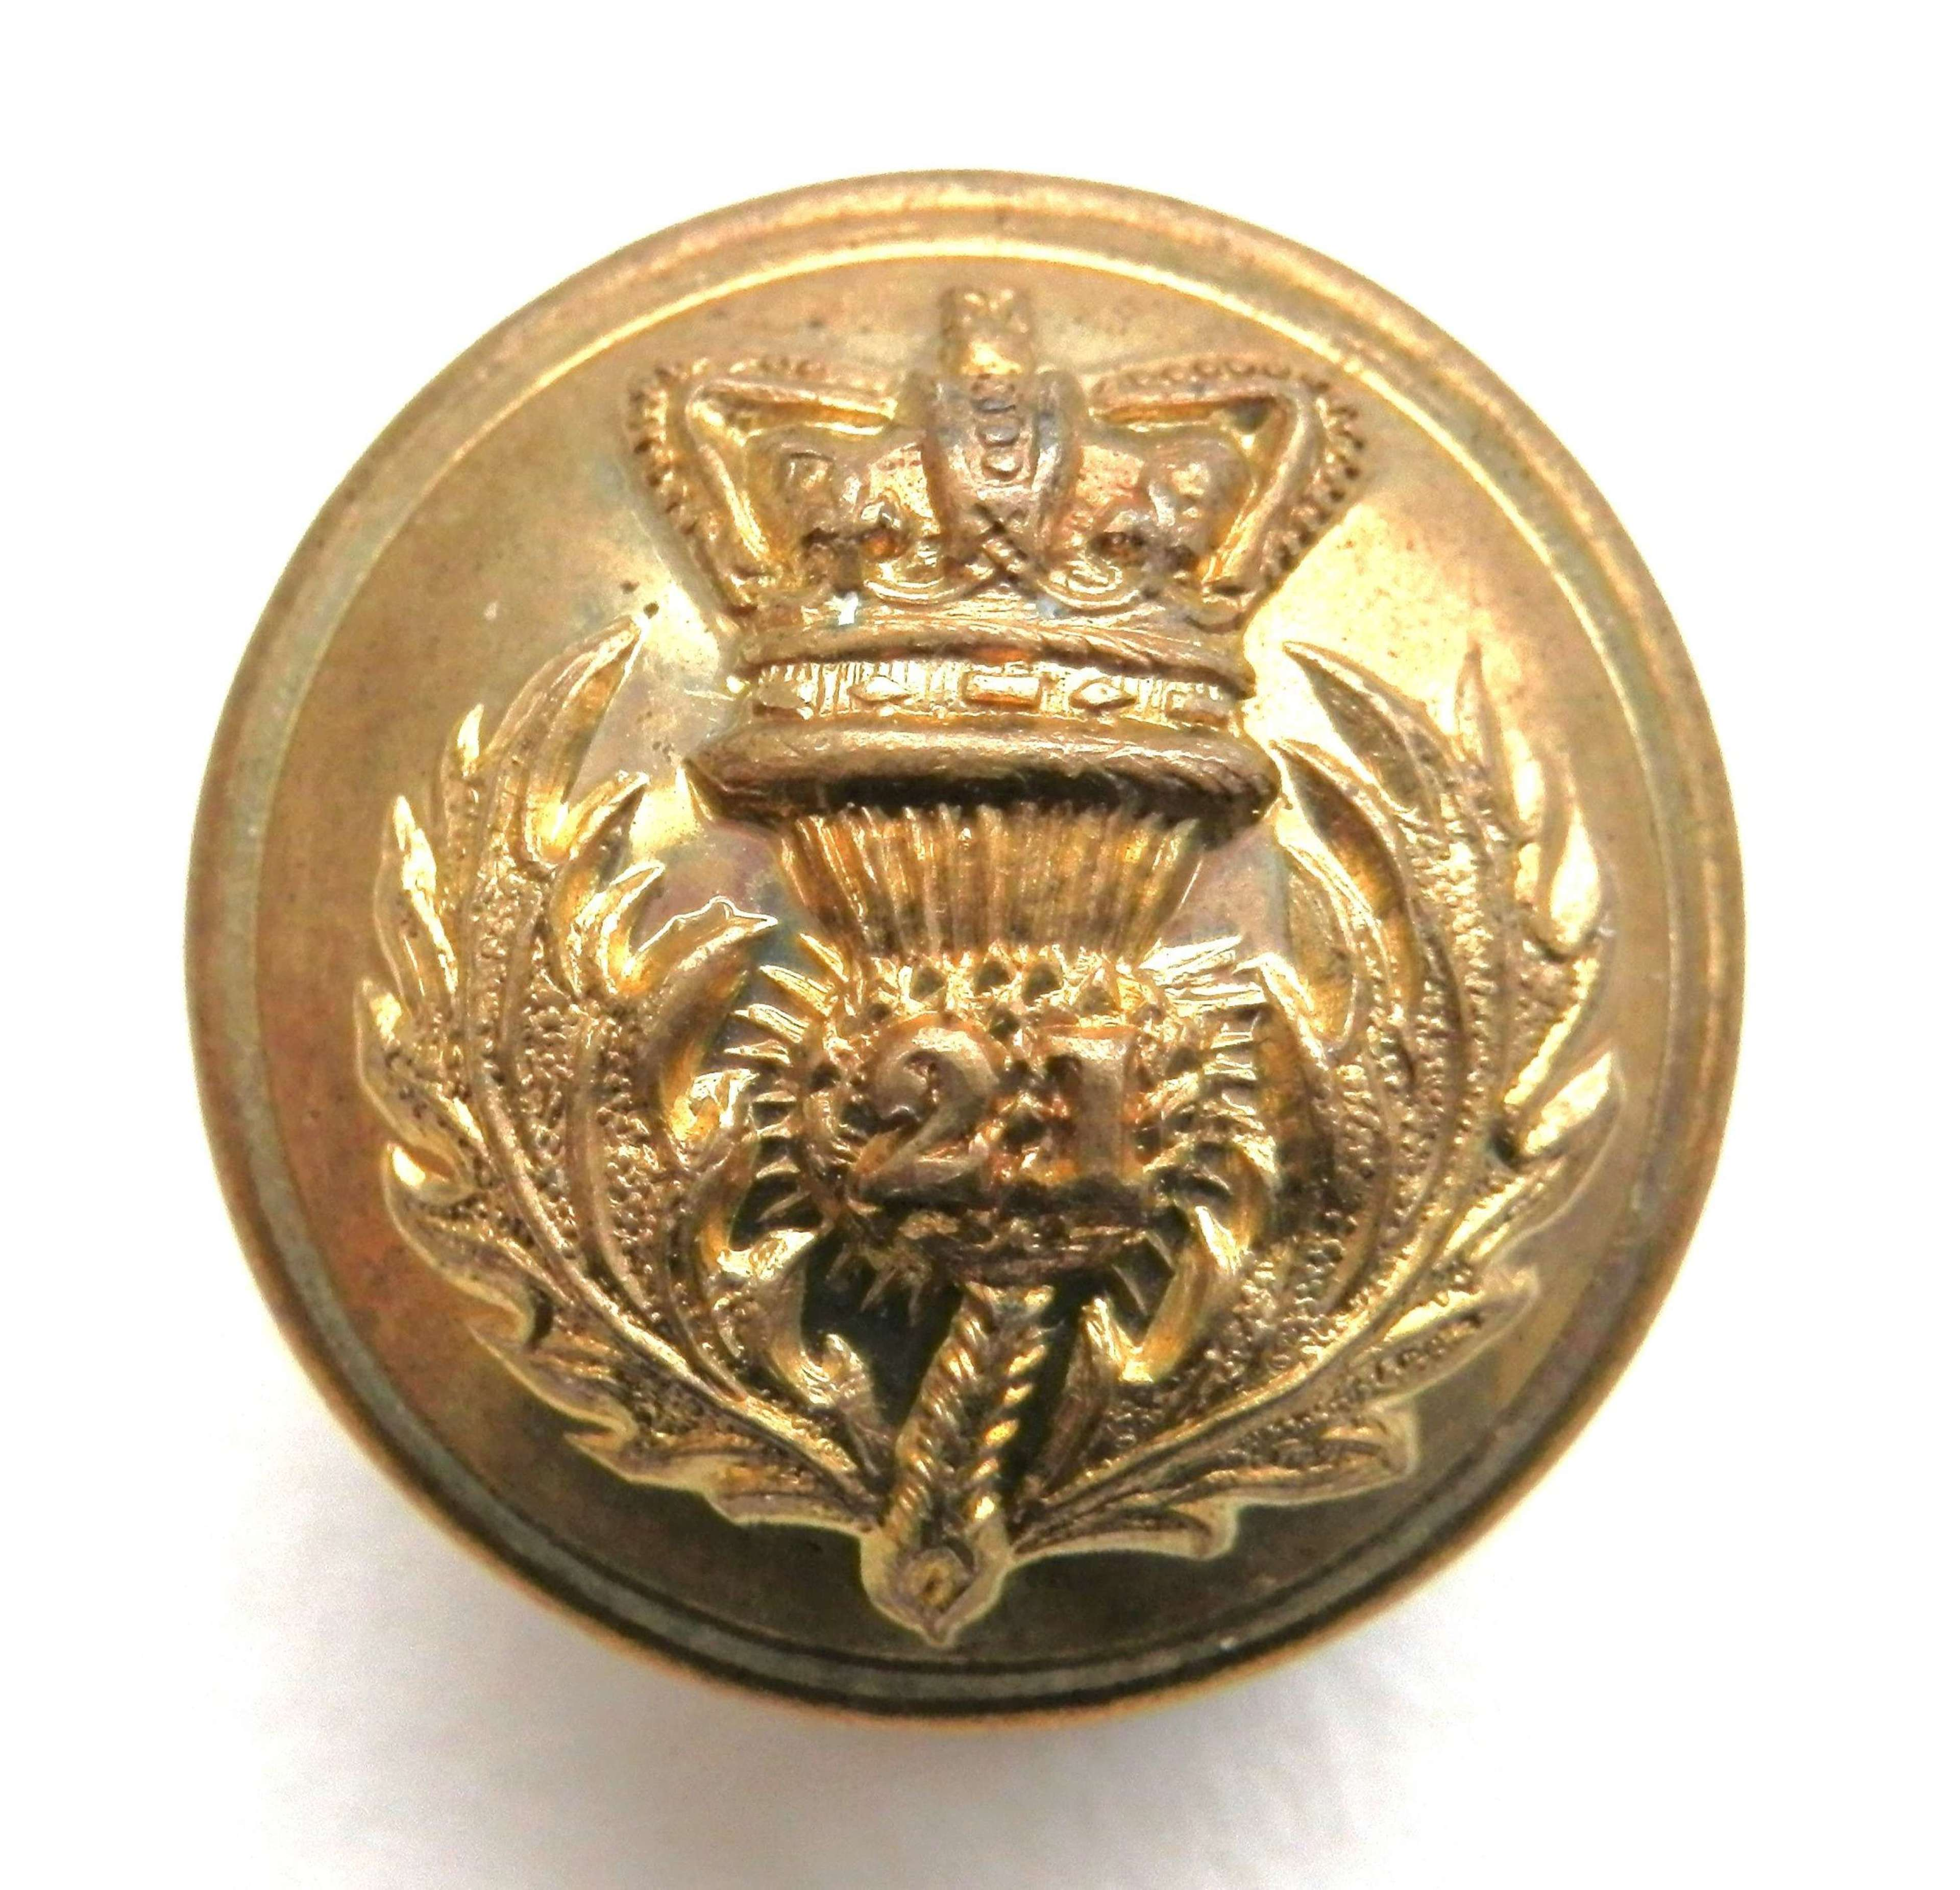 21st, Royal Scots Fusiliers Officers Button.